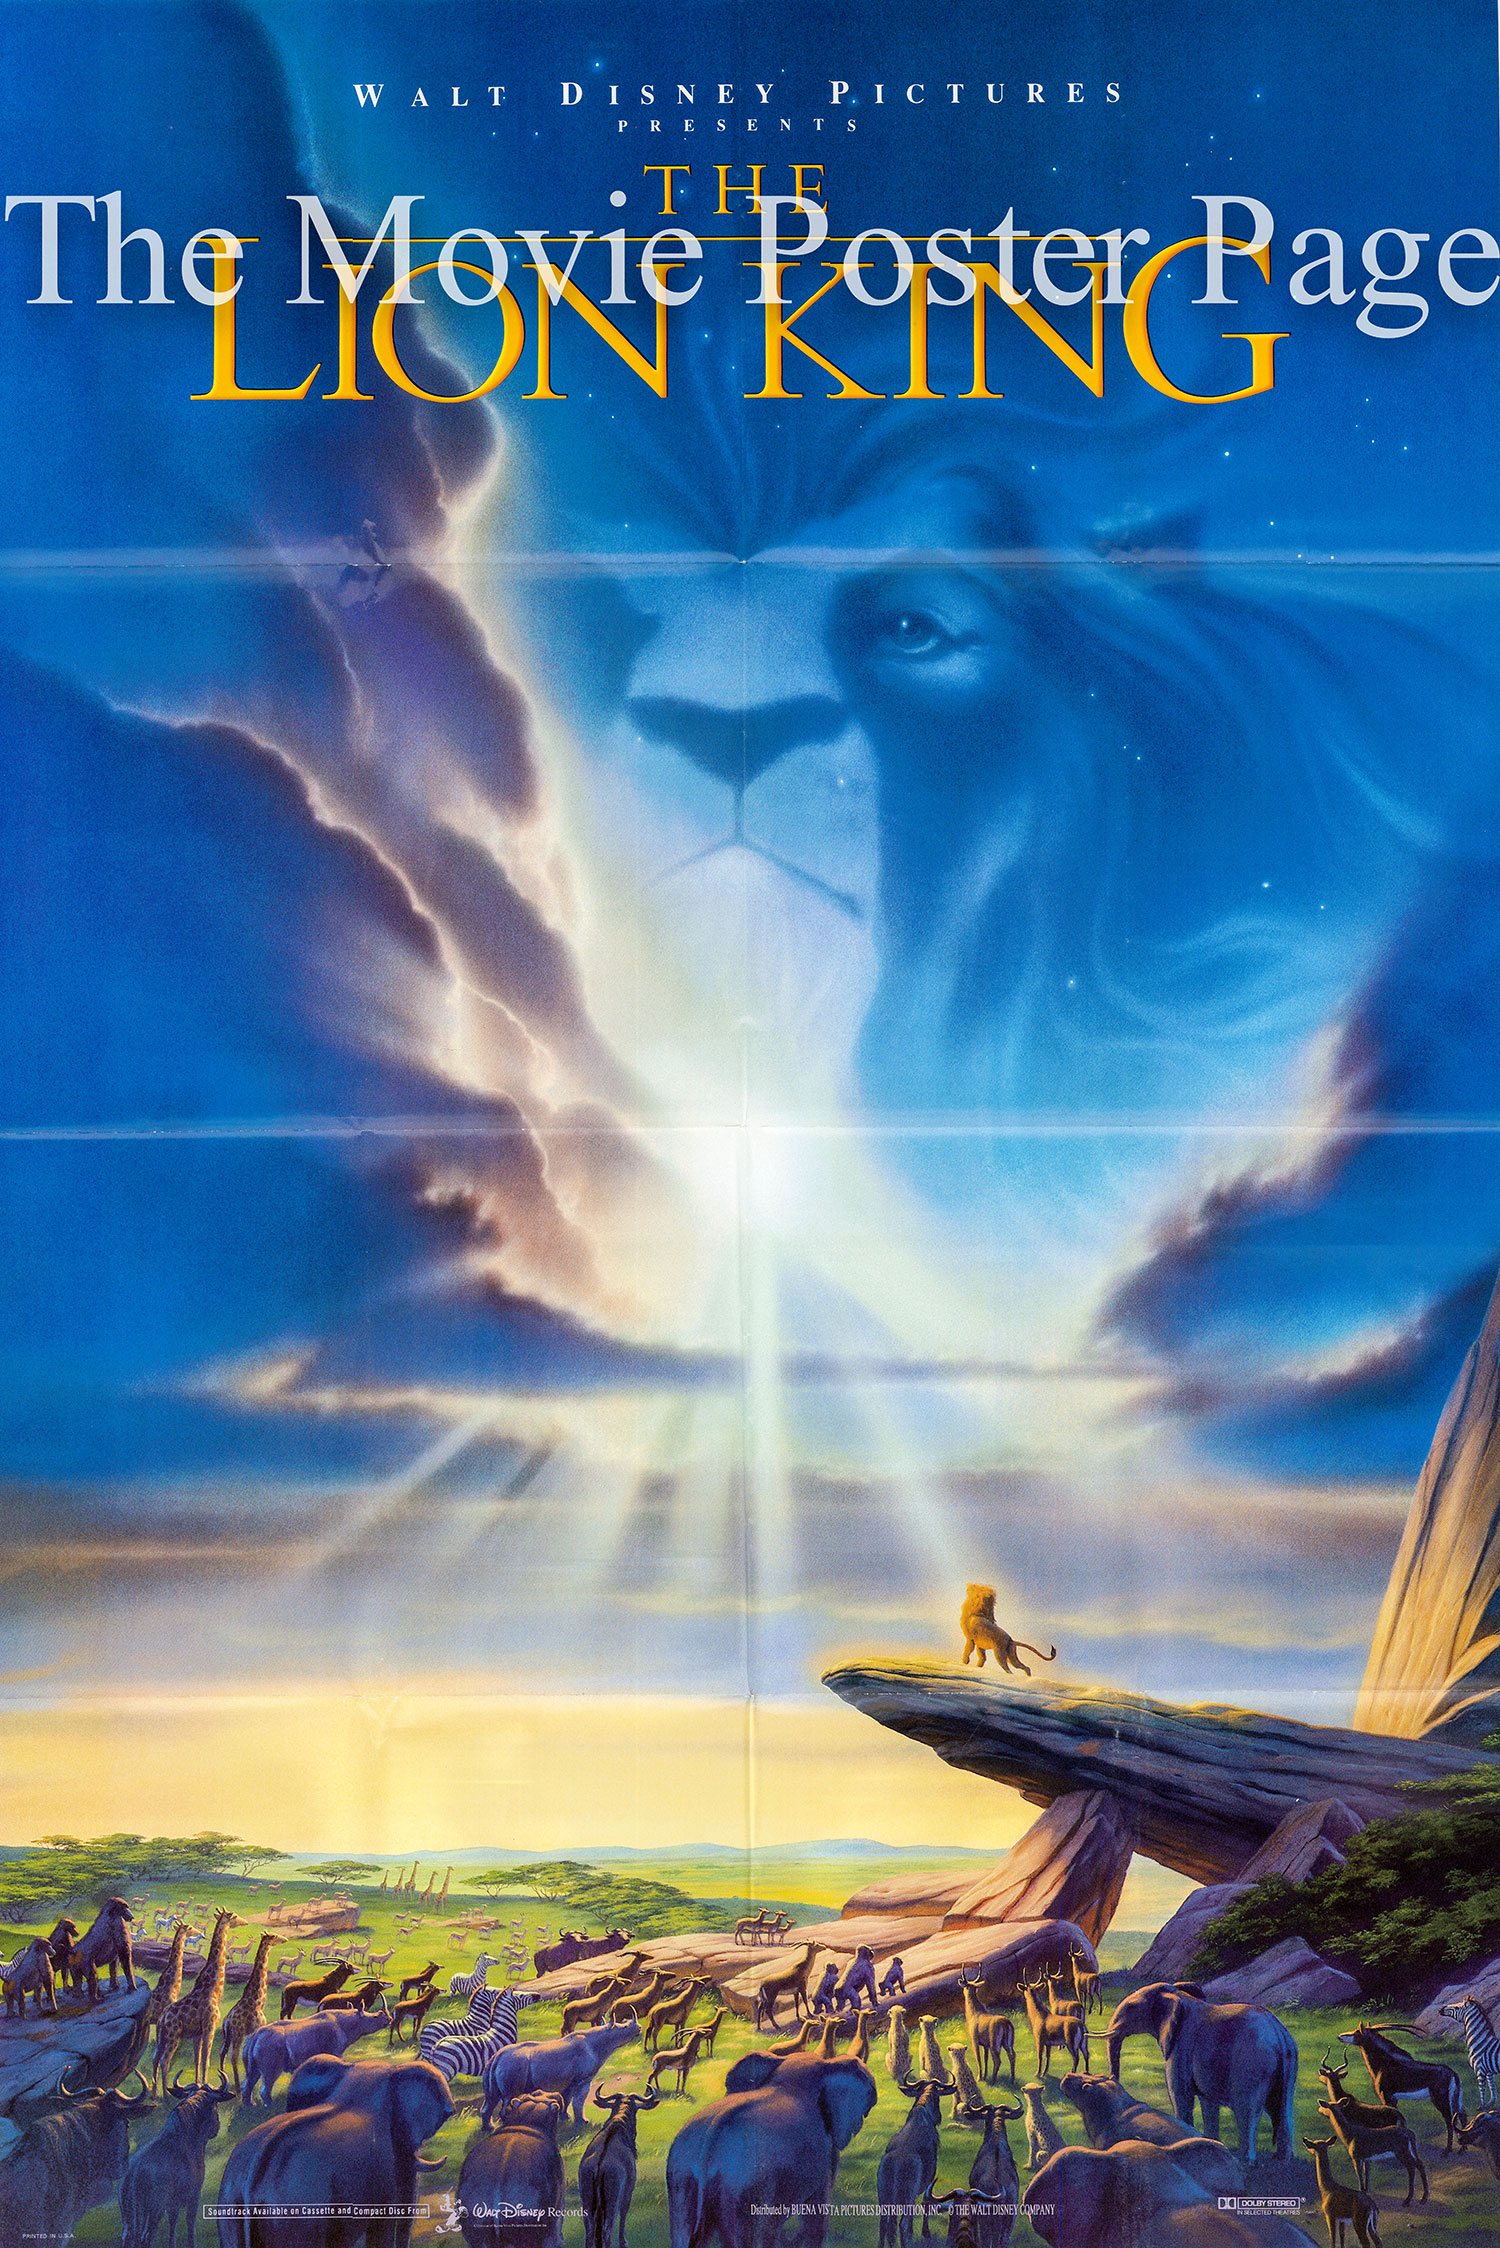 Pictured is a US promotional poster for the 1994 Disney Animation film The Lion King starring Matthew Broderick as the voice of the adult Simba.